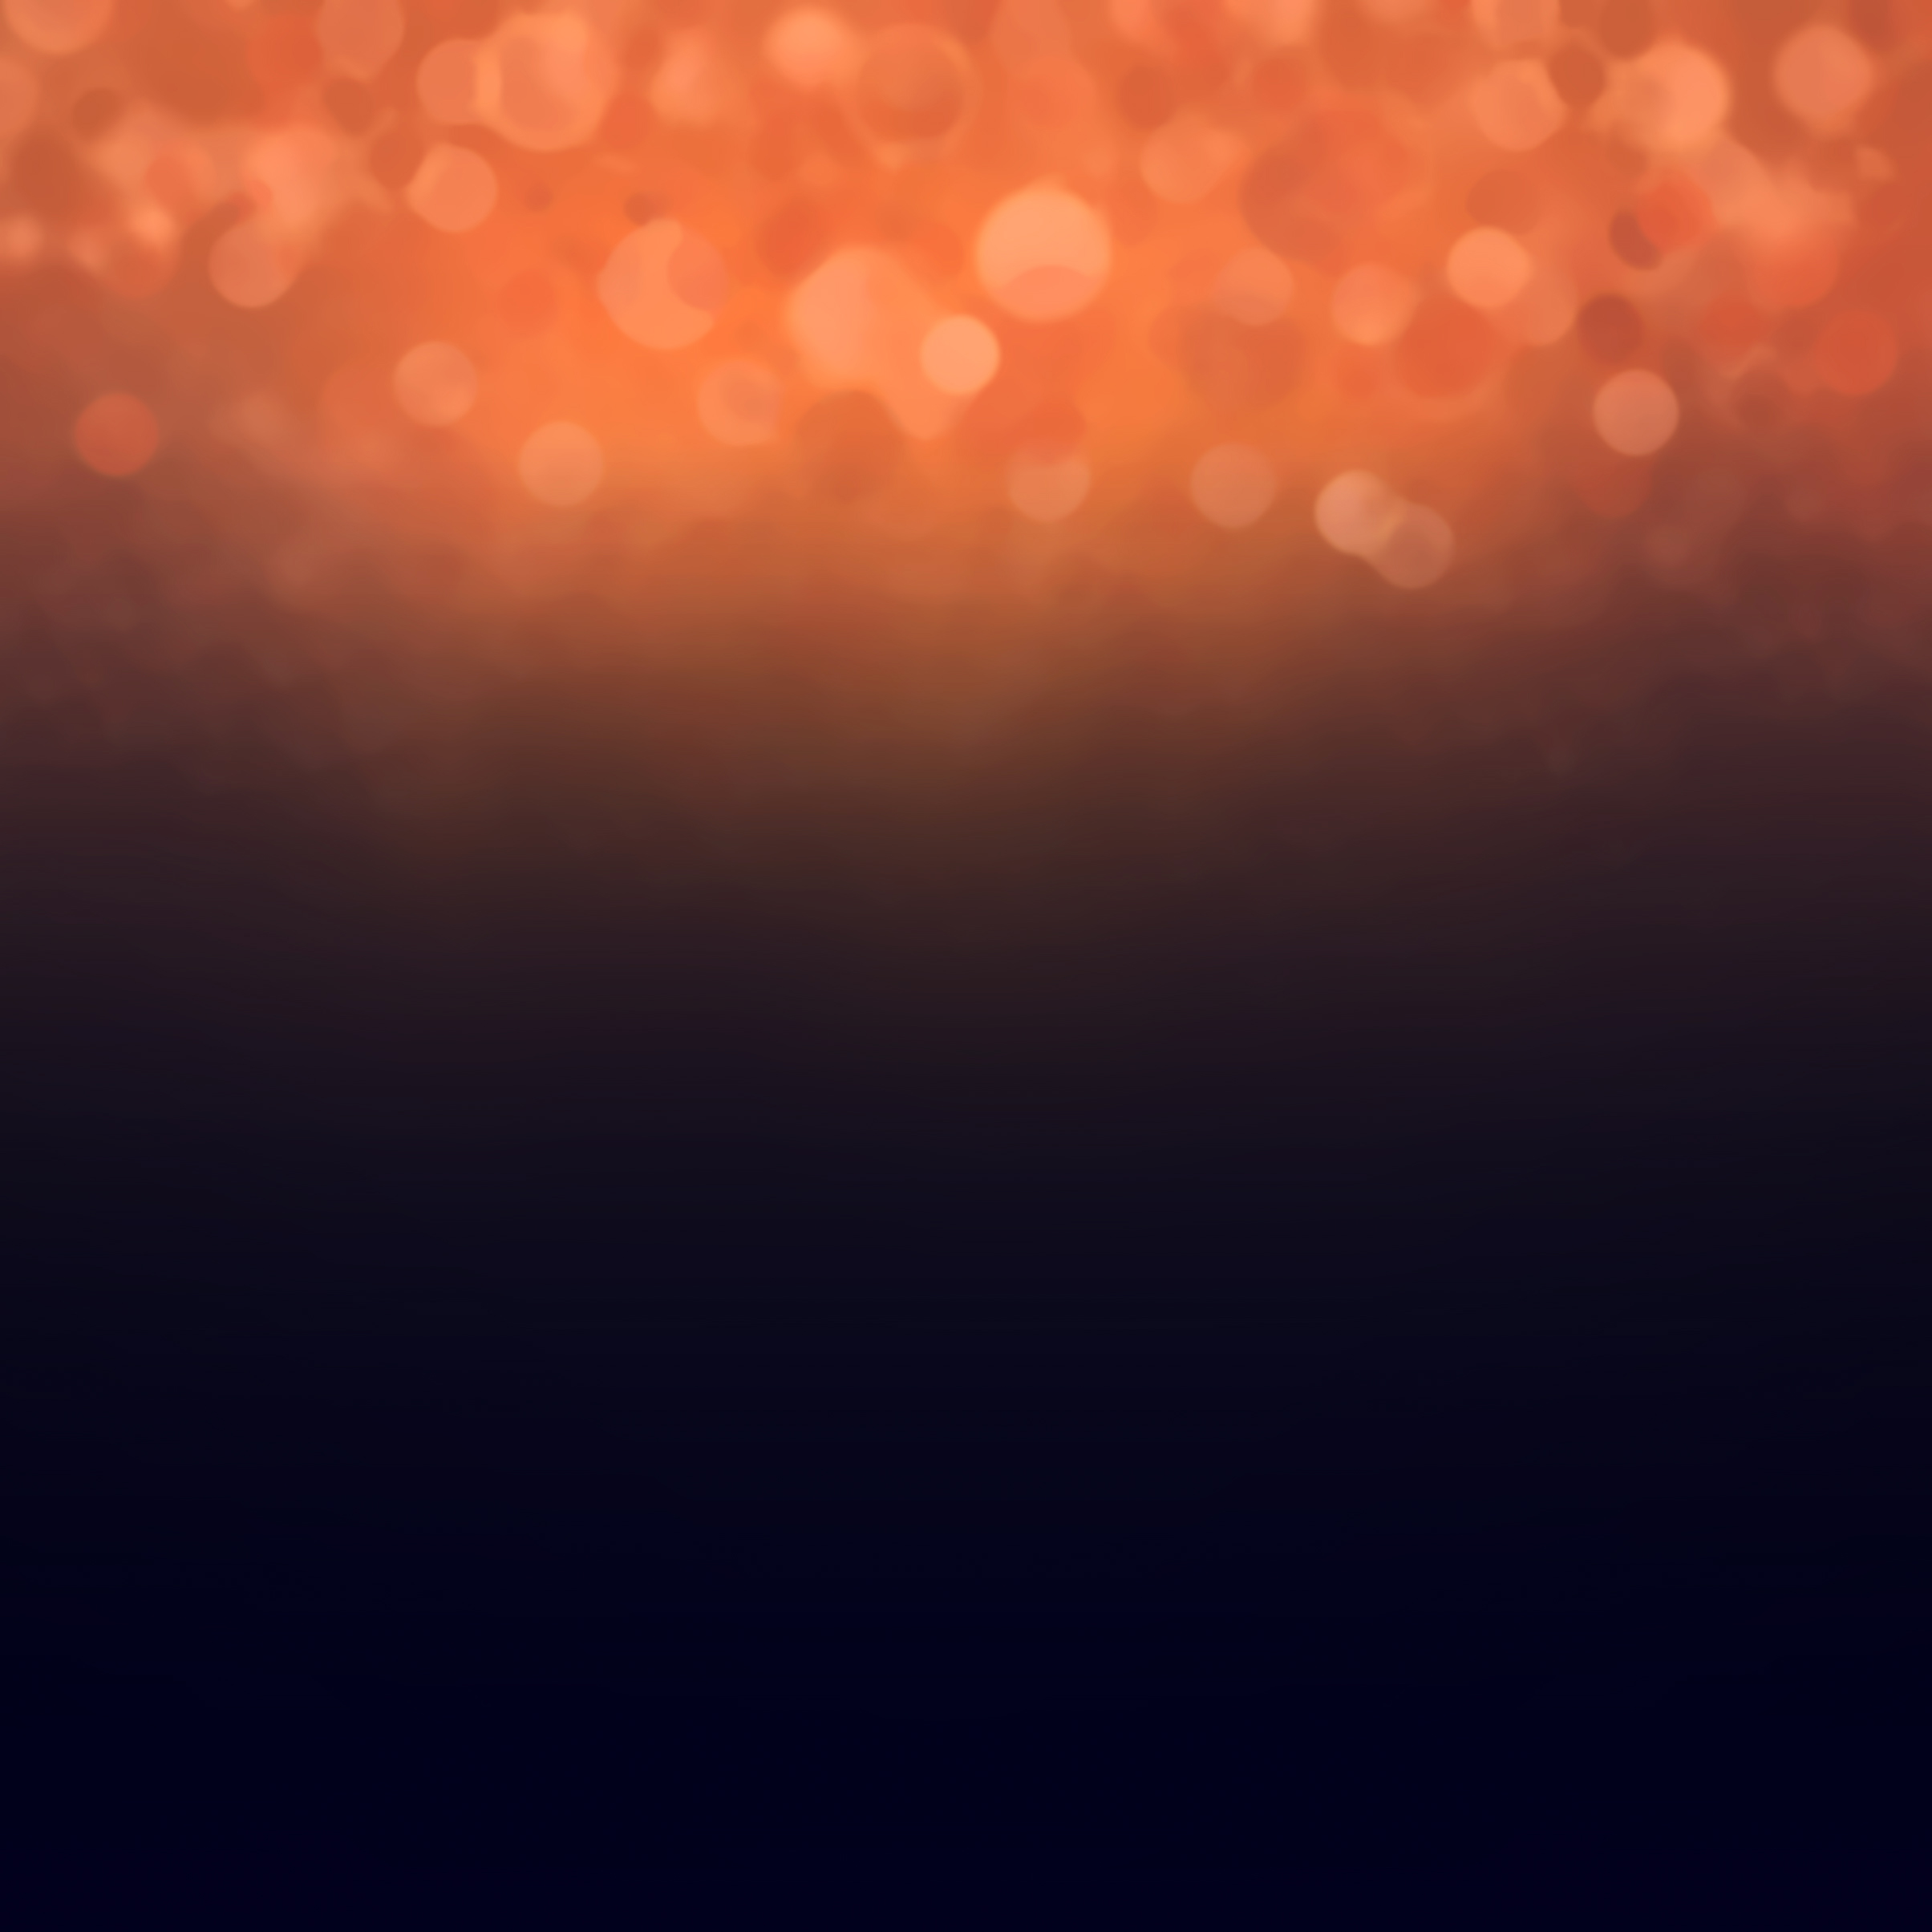 Bokeh background - deep blue and orange, Abstract, Mist, Outdoor, Orange, HQ Photo